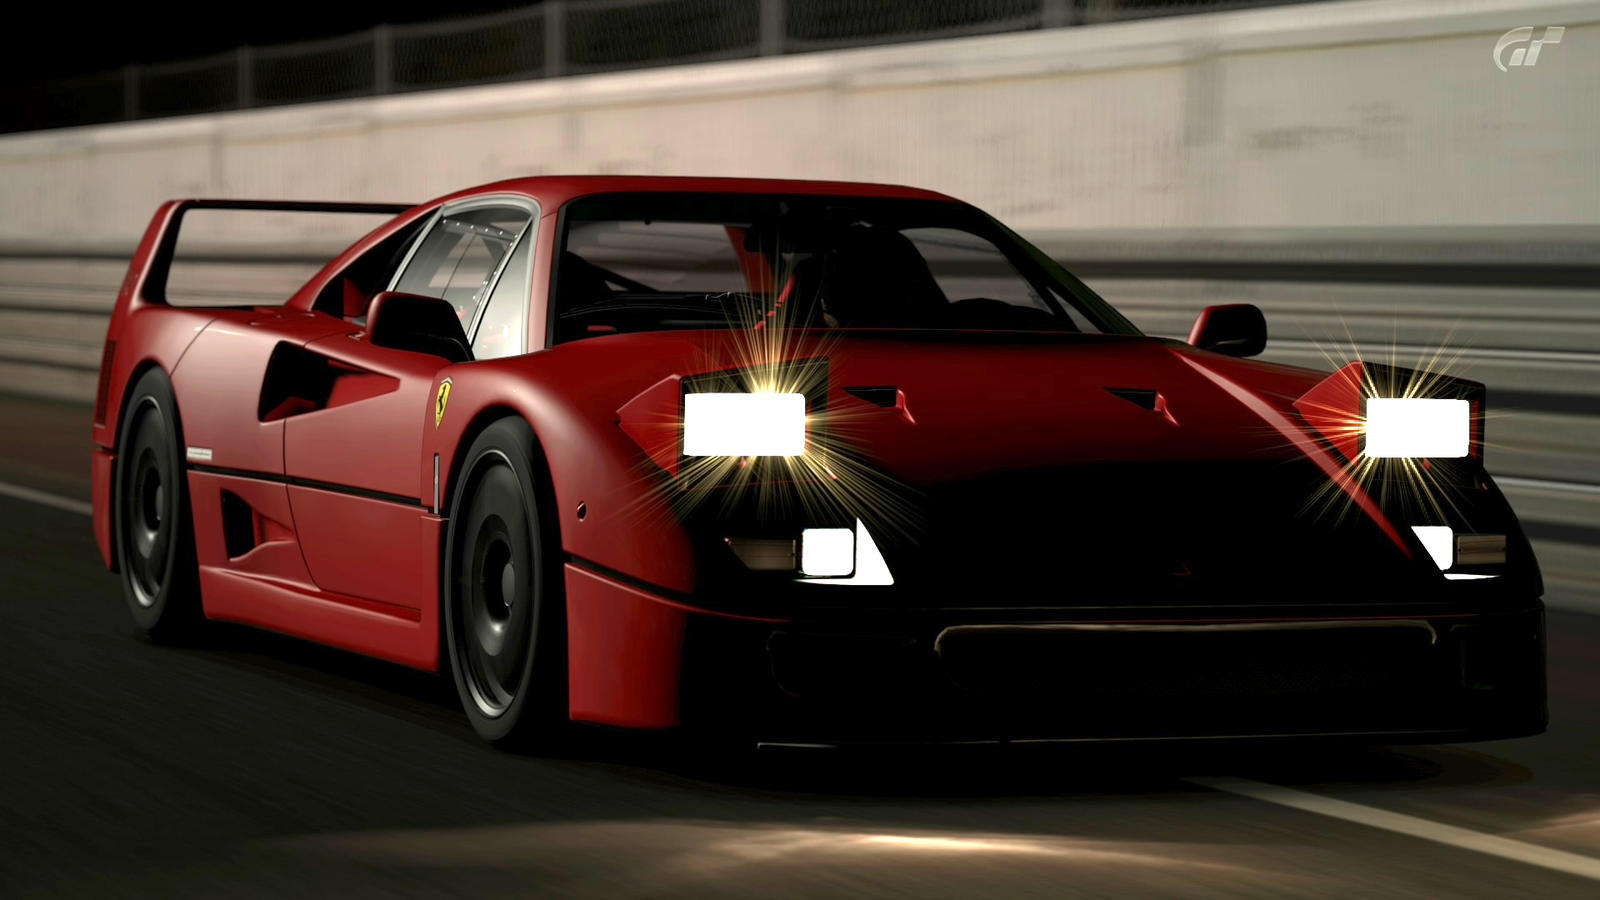 Good Wallpaper Night Ferrari - ferrari_f40_by_pauldavidlett-d4mwutm  2018-887765.jpg